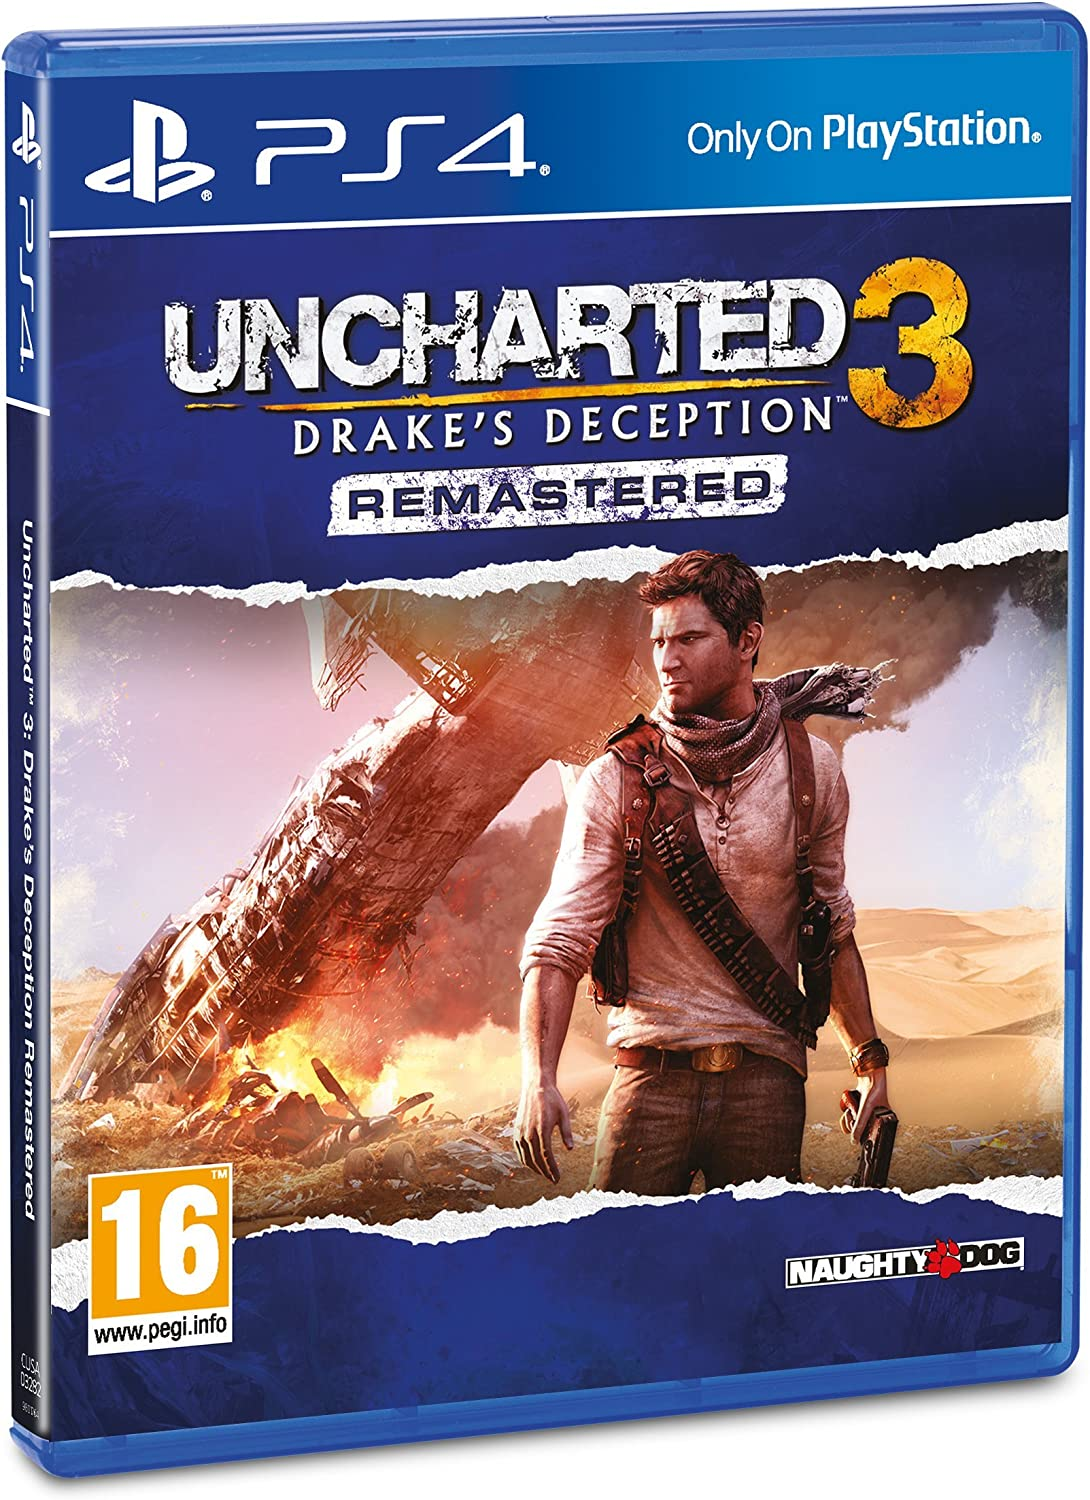 ps4 games uncharted 3